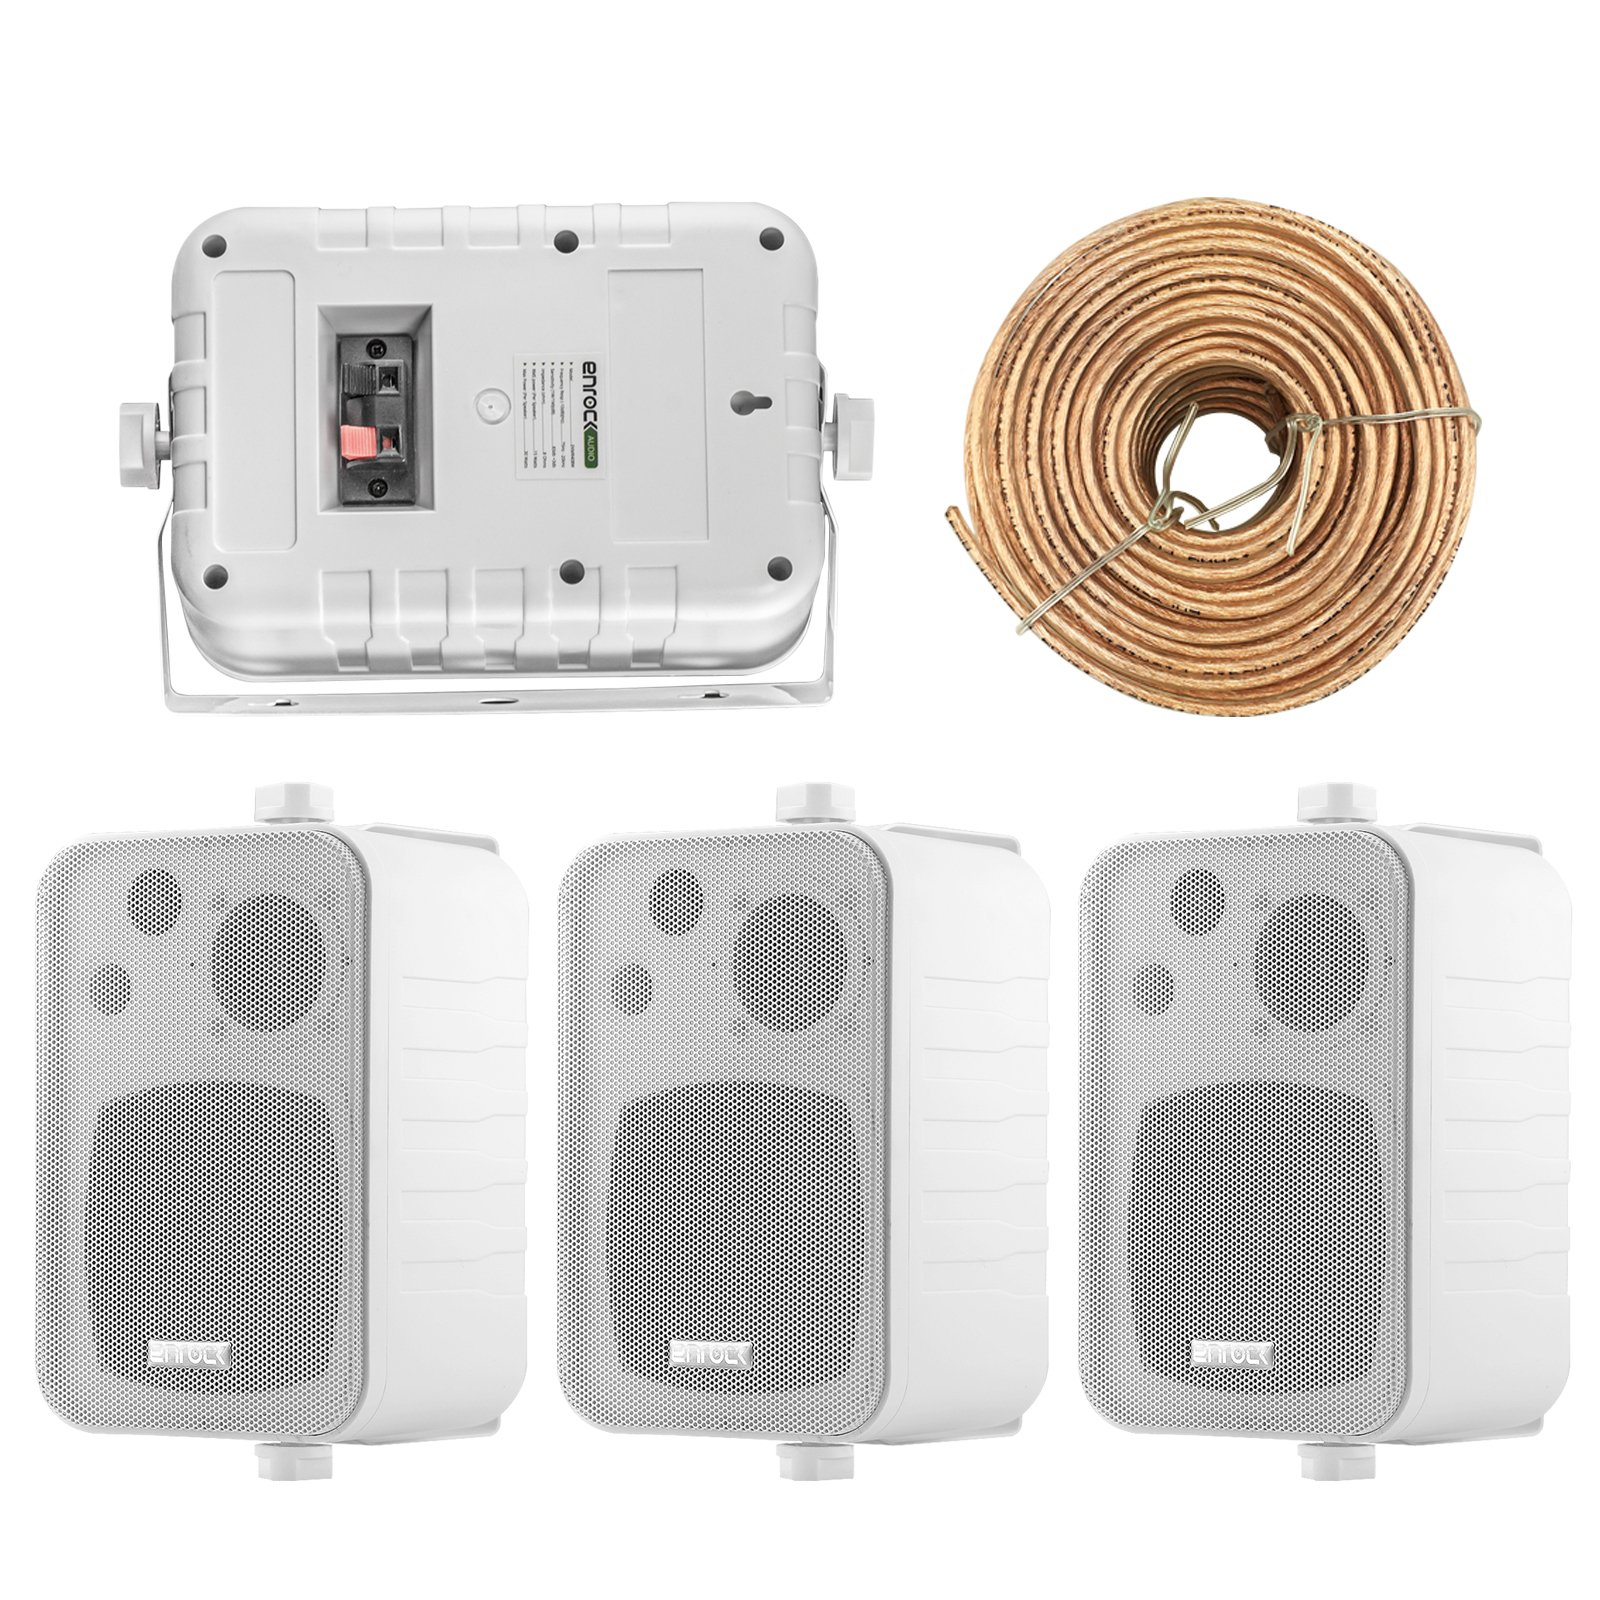 4x Speakers Bundle Package: 2 Pairs of Enrock Audio EKMR408W 4-Inch 200 Watts White 3-Way Indoor / Outdoor Marine Boat Box-Speaker Combo With 50 Foot 18 Guage Speaker Wire